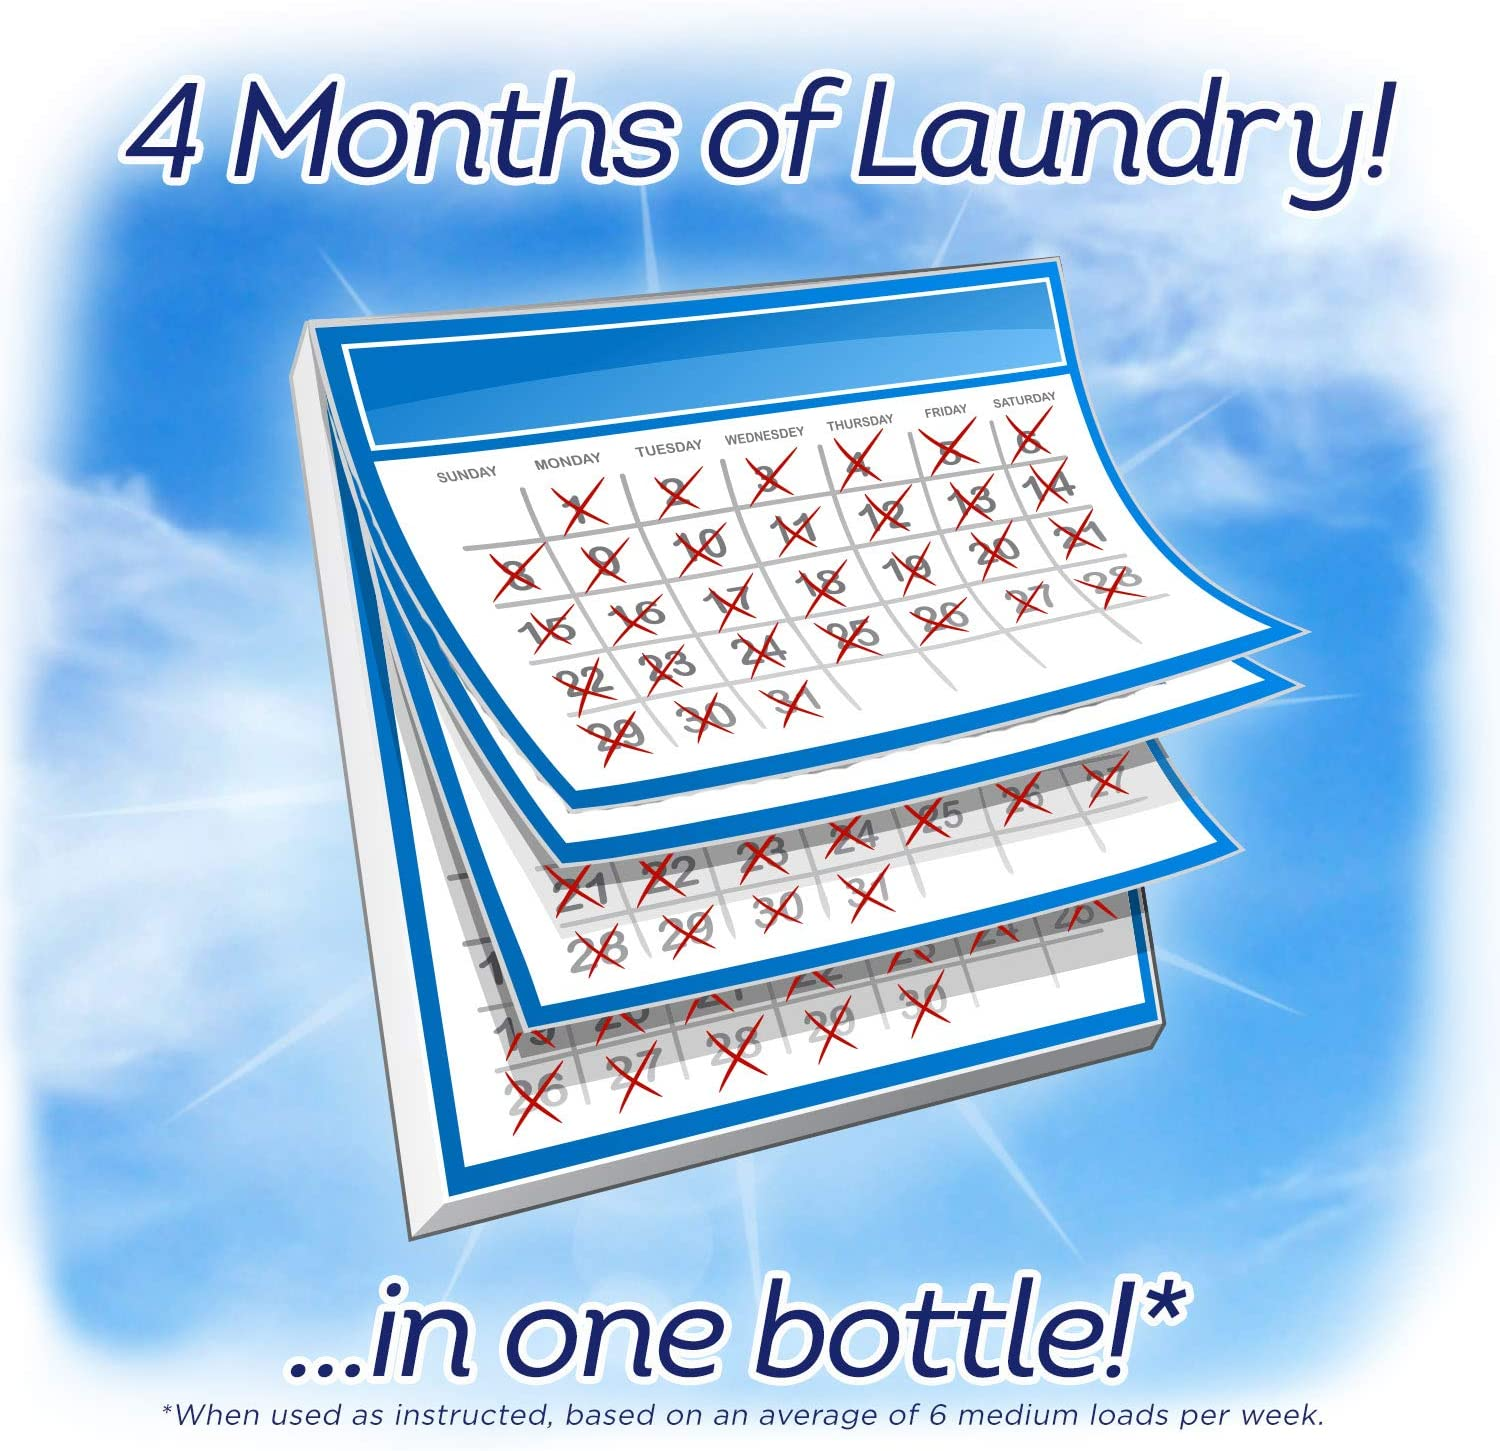 All Liquid Laundry Detergent, Free Clear for Sensitive Skin, 2X Concentrated, 110 Loads: Health & Personal Care